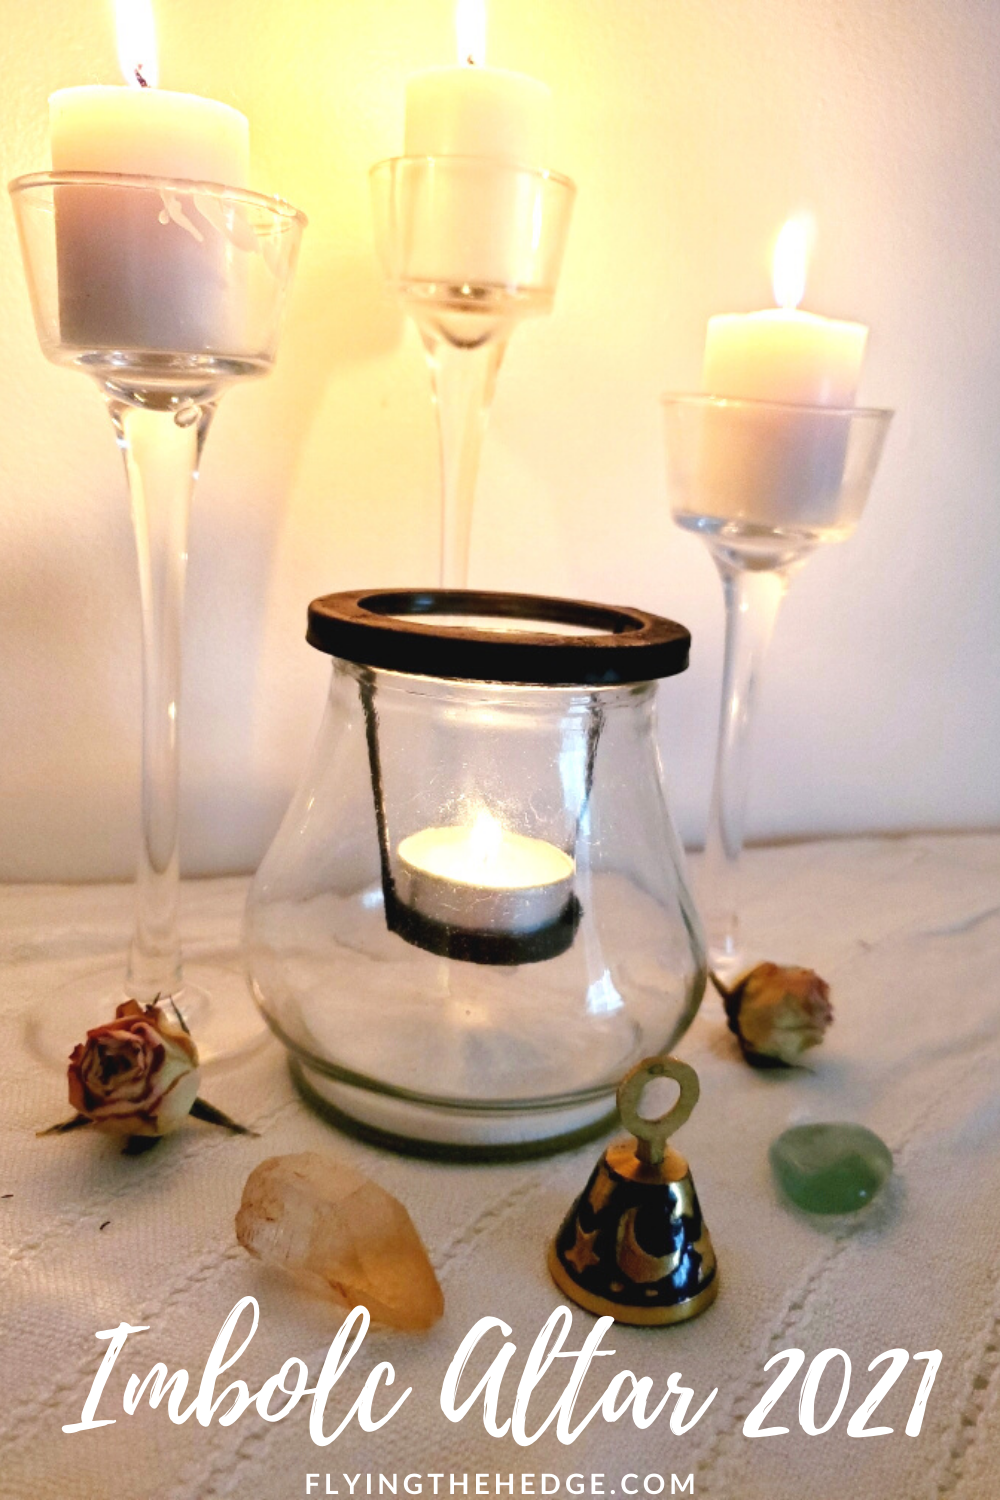 Imbolc, Winter Themstice, altar, witchcraft, hedgewitch, hedge witch, sabbat, Candlemas, witch, wicca, wiccan, pagan, neopagan, occult